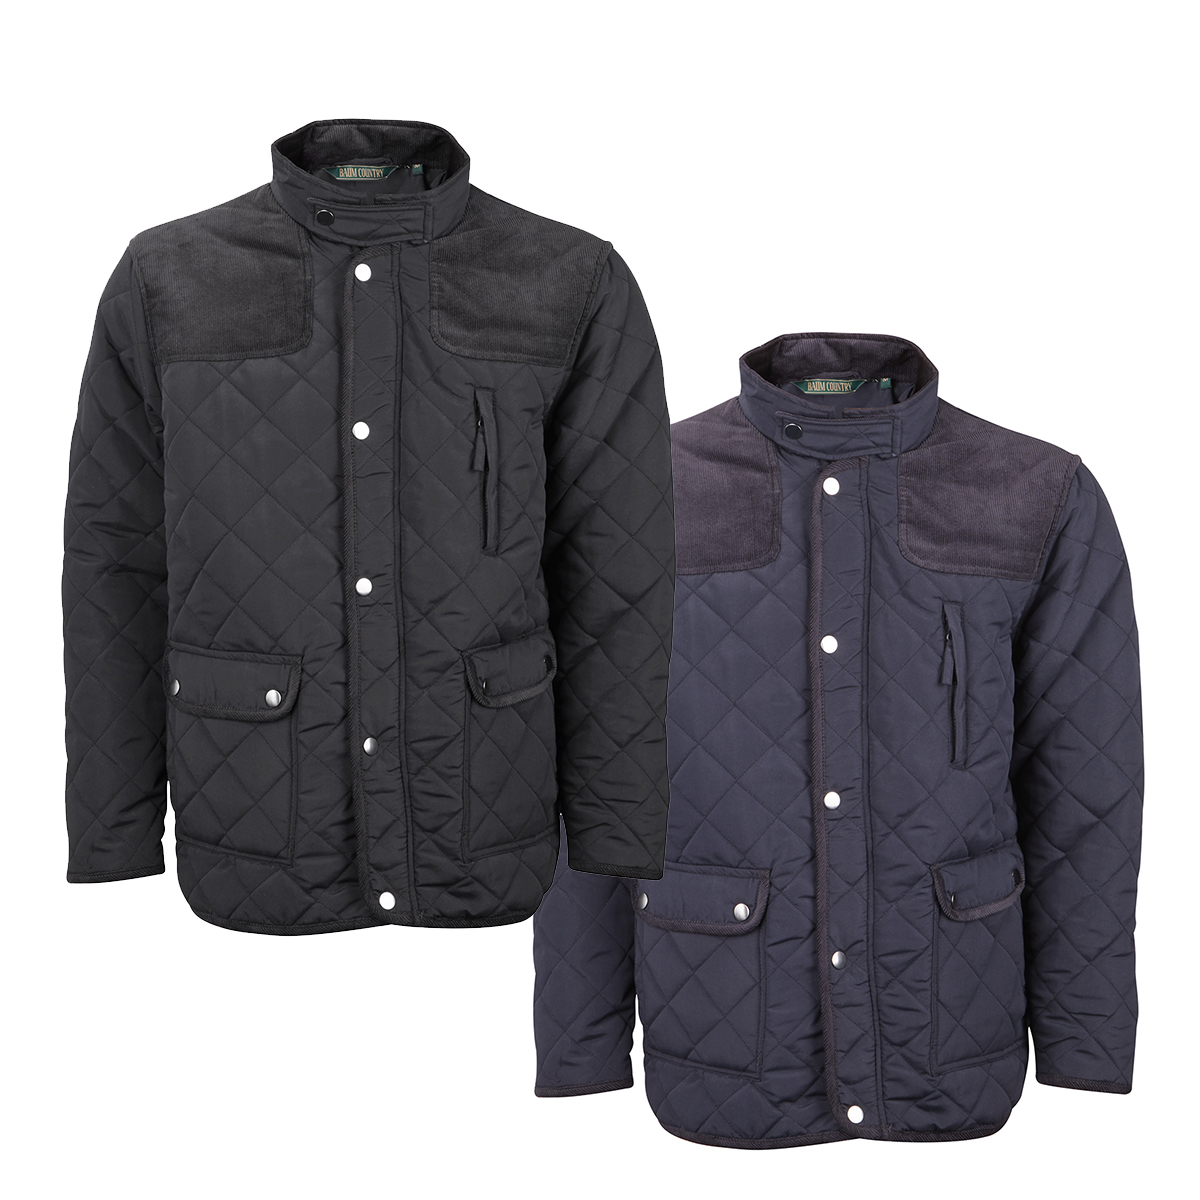 Baum Country Mens Quilted Jacket Coat Diamond Padded Cord Patches